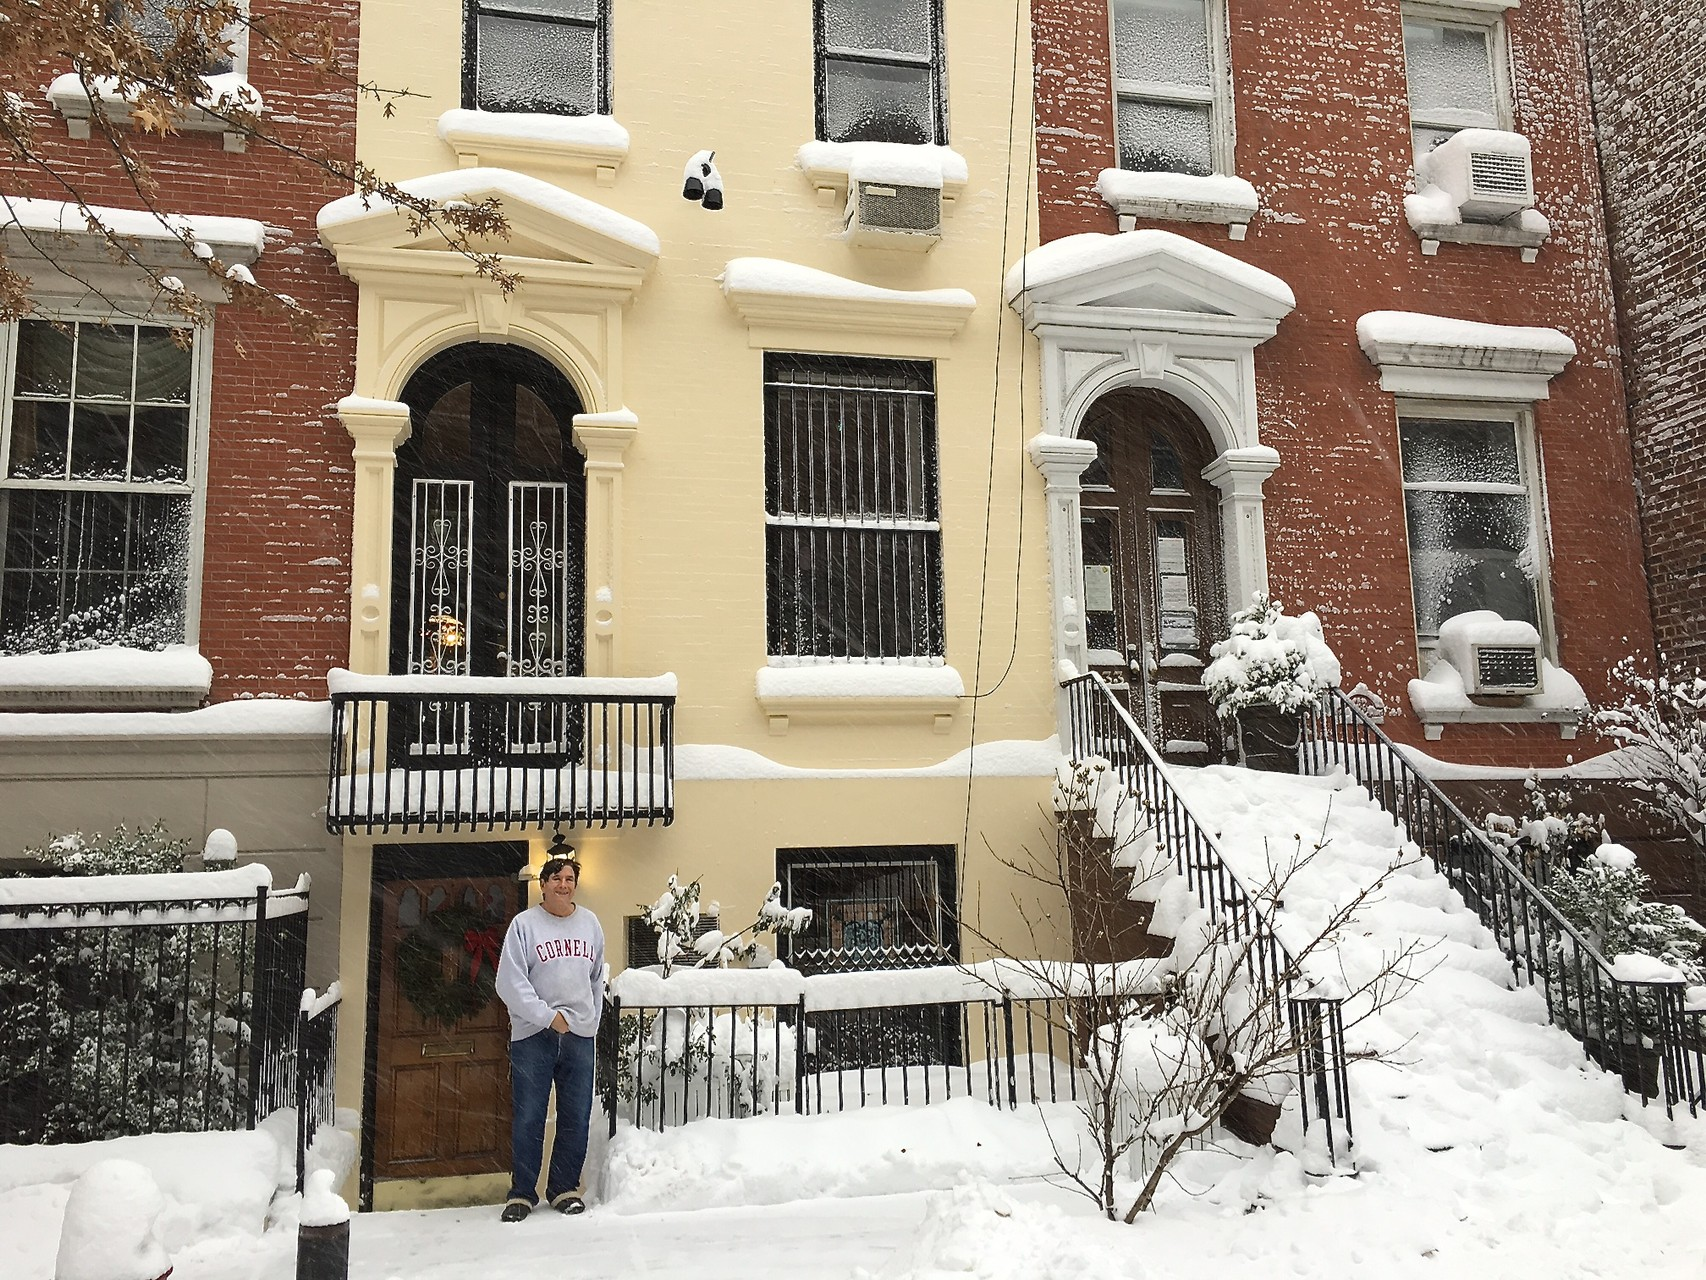 Blizzard in NYC, January 23, 2016; John in front of our house.